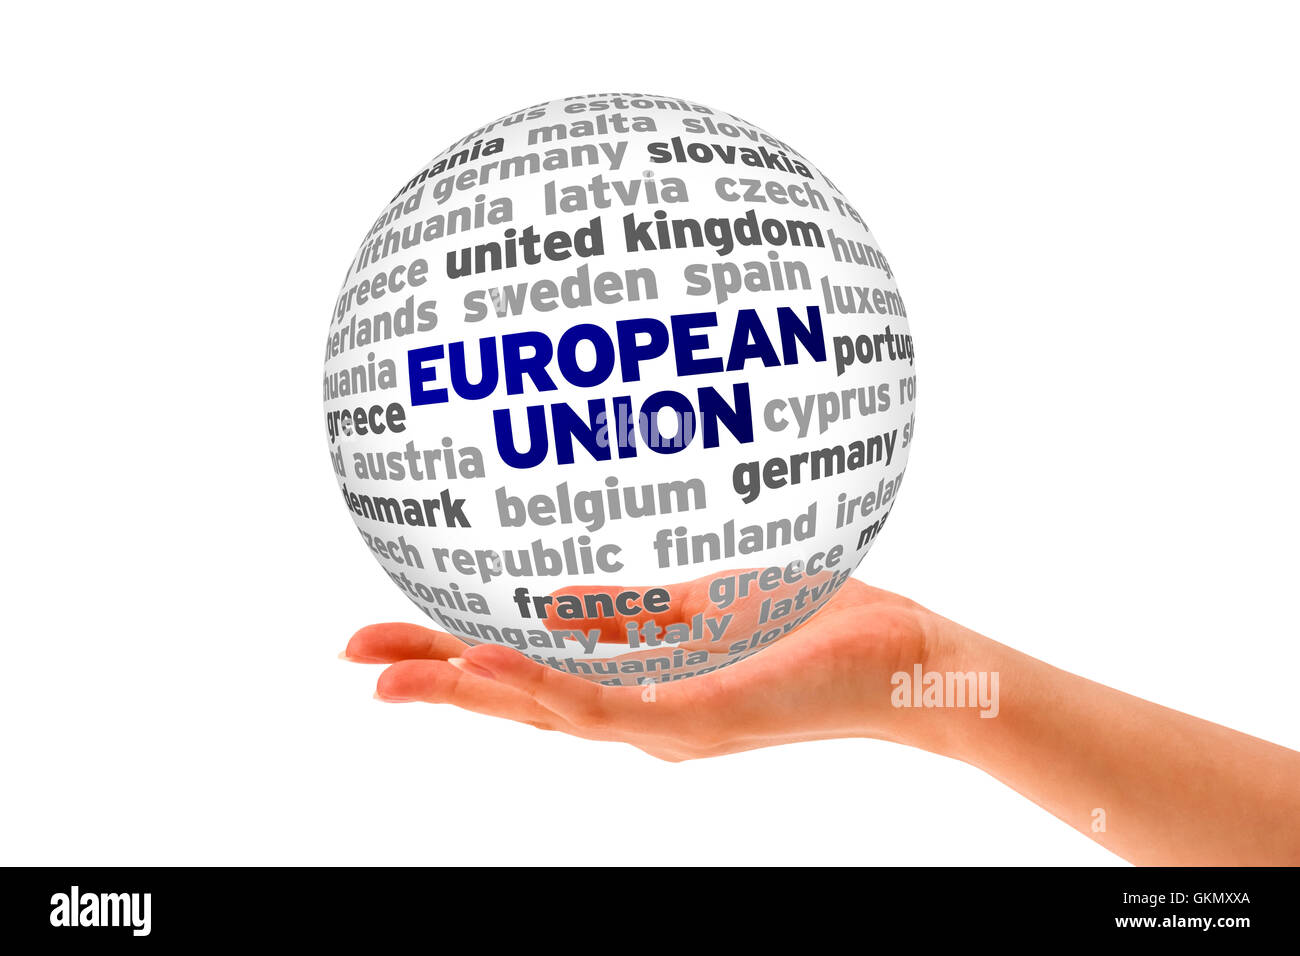 European Union - Stock Image